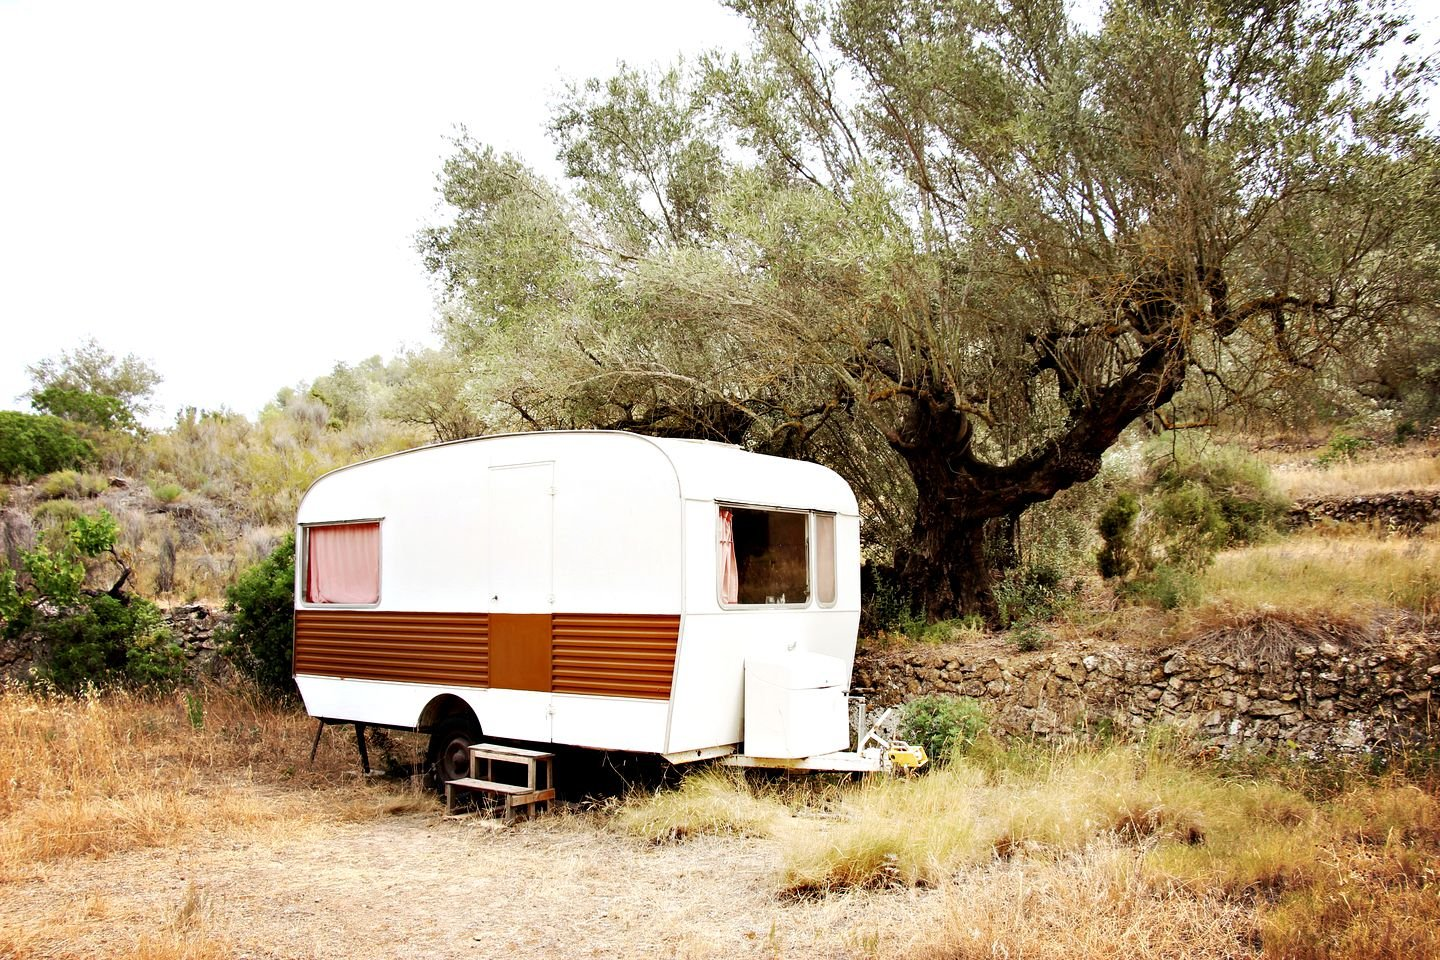 Vintage caravan for rent near Ebro valley, Spain (Tarragona, Catalonia)